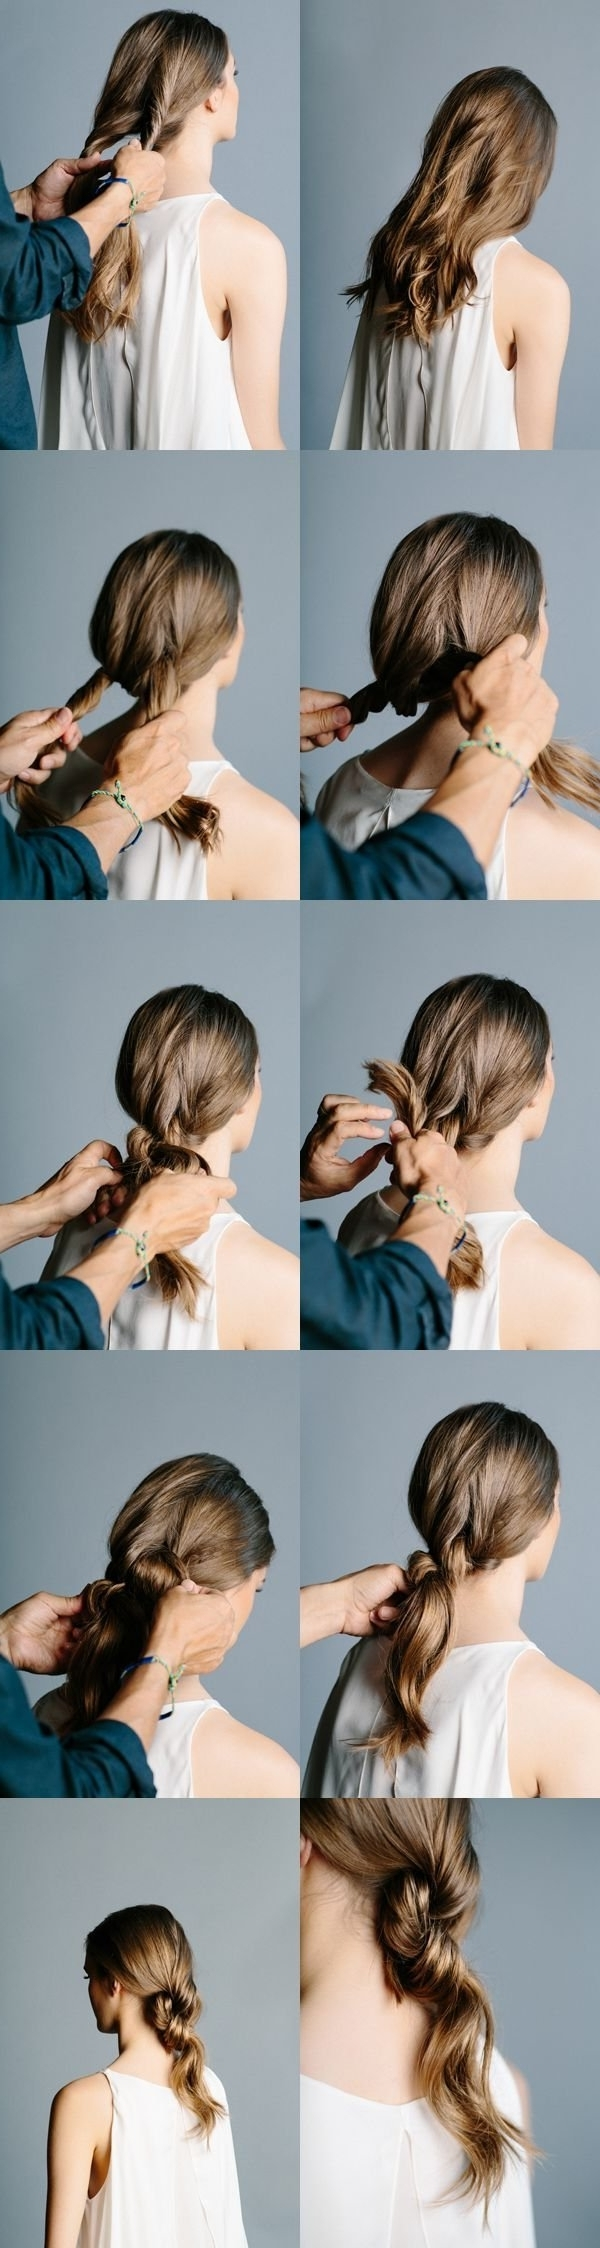 12 Simple & Easy Hairstyles For Girls Who Are Always In A Hurry Throughout Trendy Double Tied Pony Hairstyles (View 1 of 20)